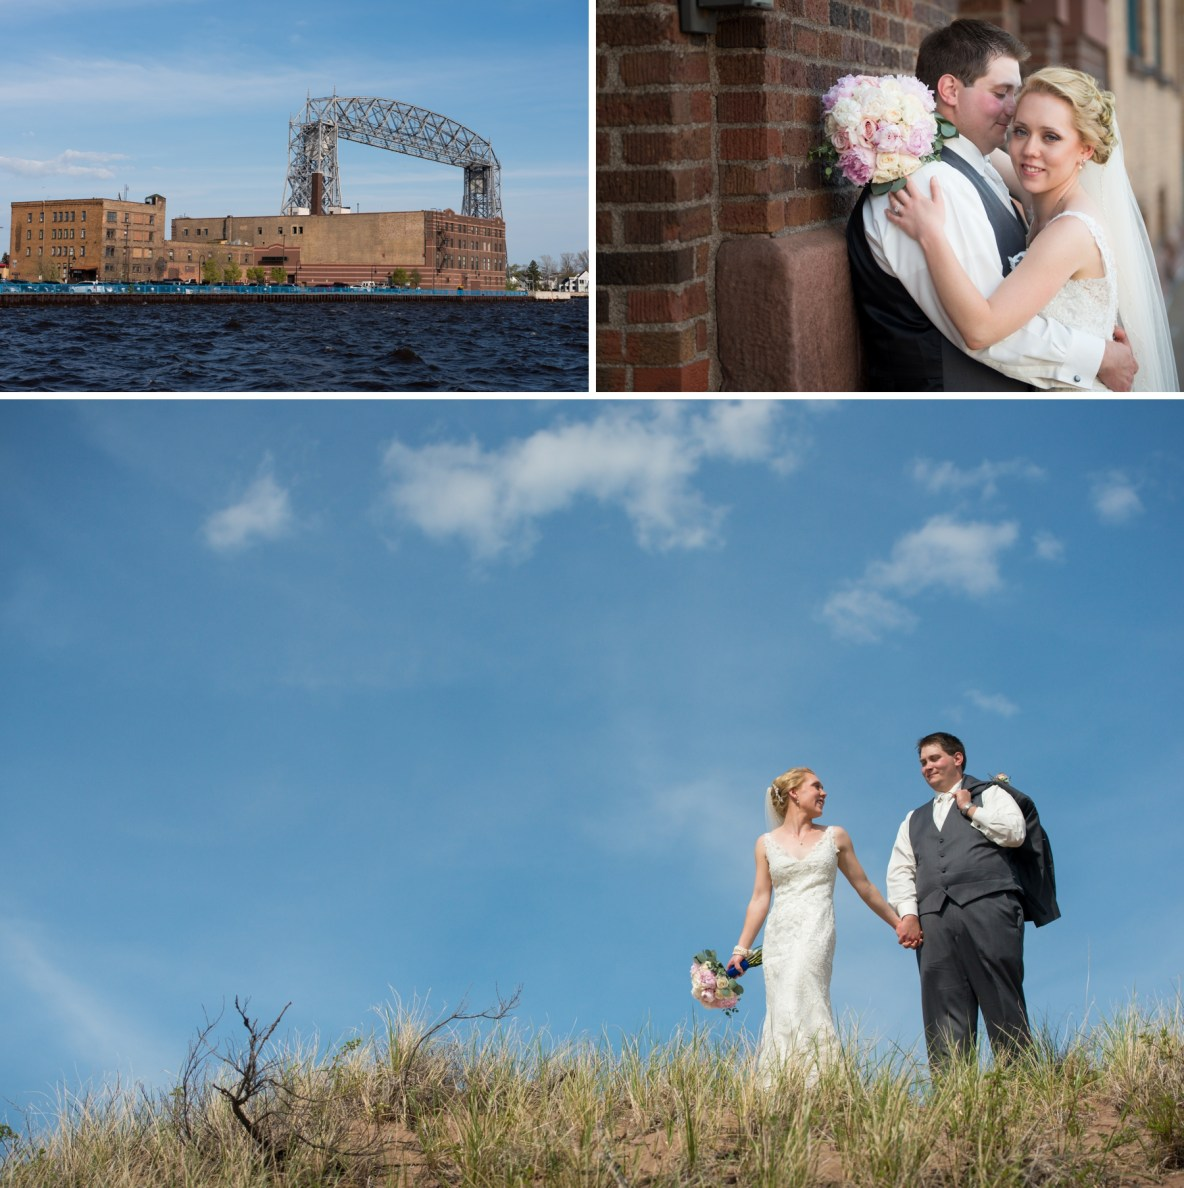 Canal Park and Park Point Wedding Photos in Duluth MN by Bryan Jonathan Weddings.